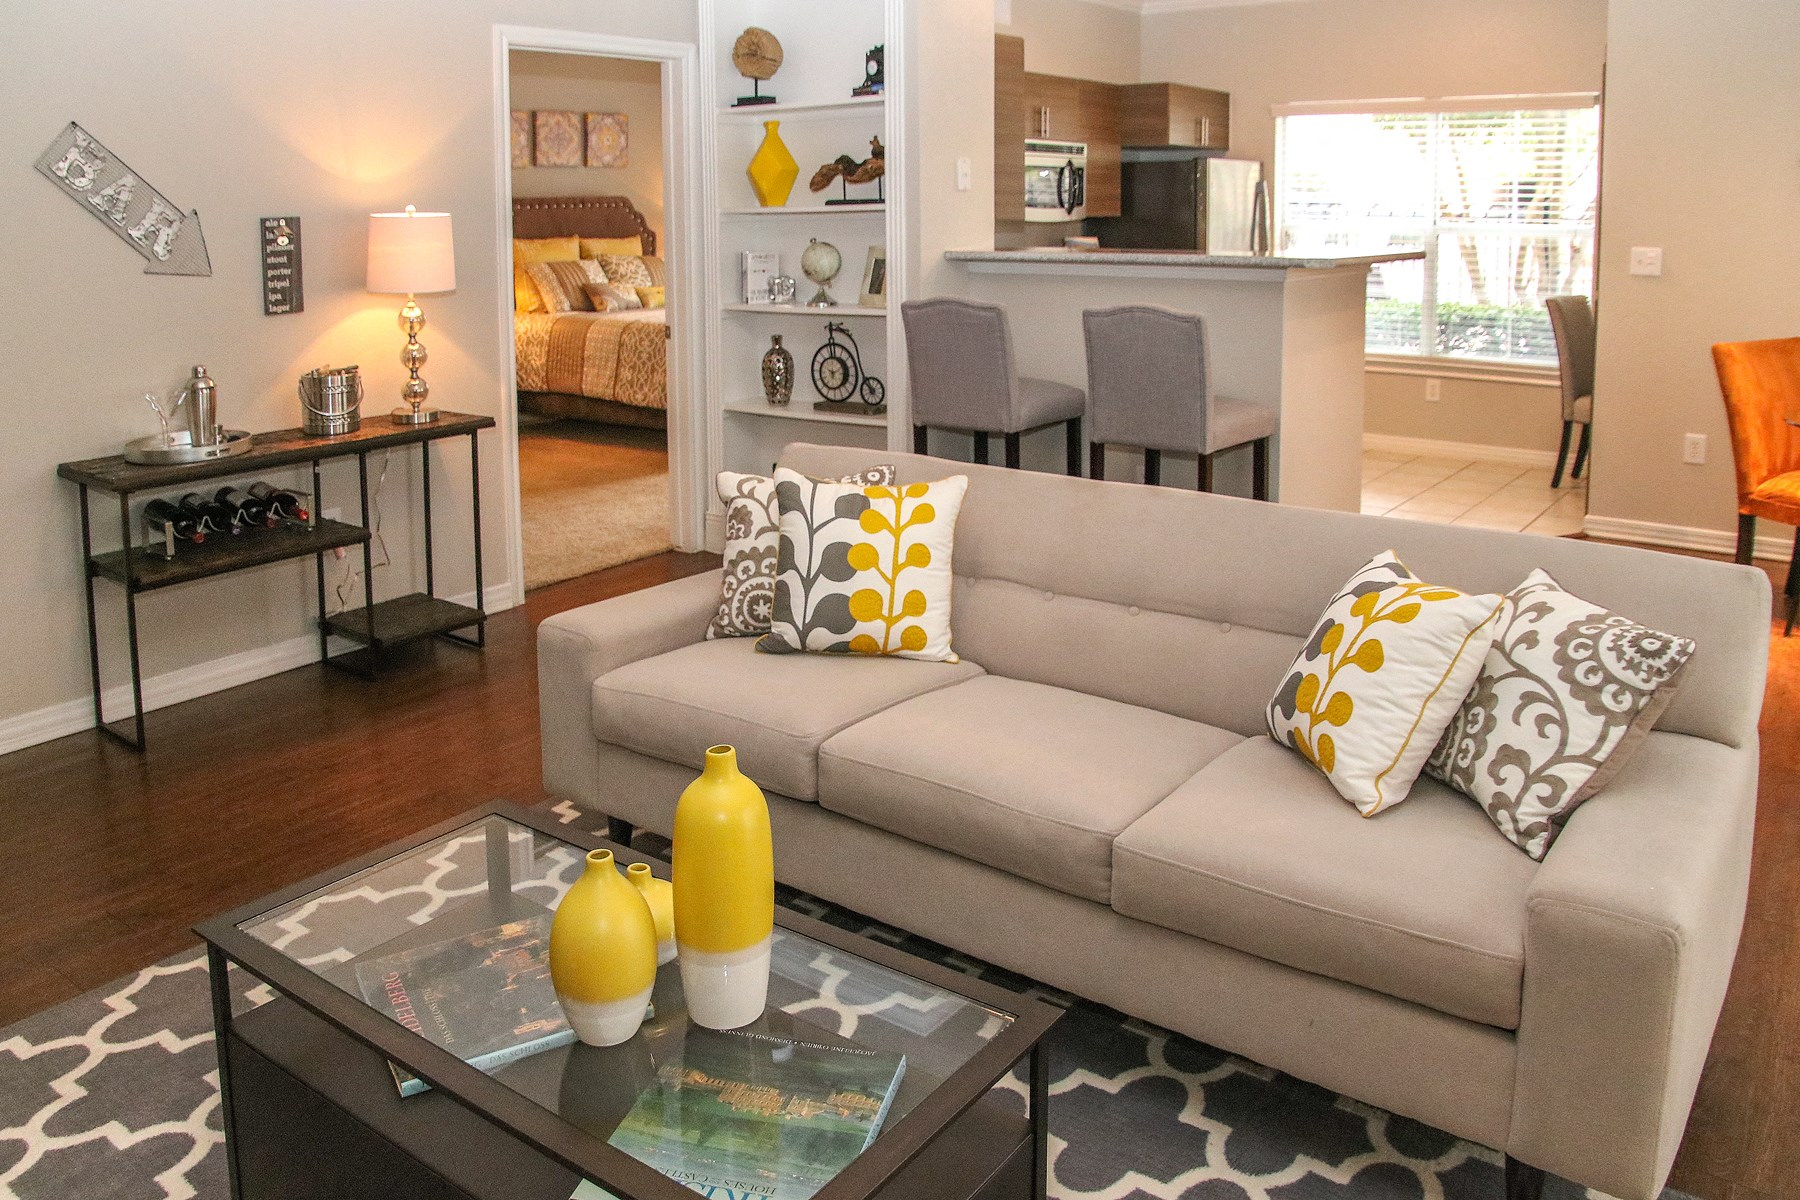 Spacious Apartment Home at 7900 at Park Central Apartments in Dallas, TX